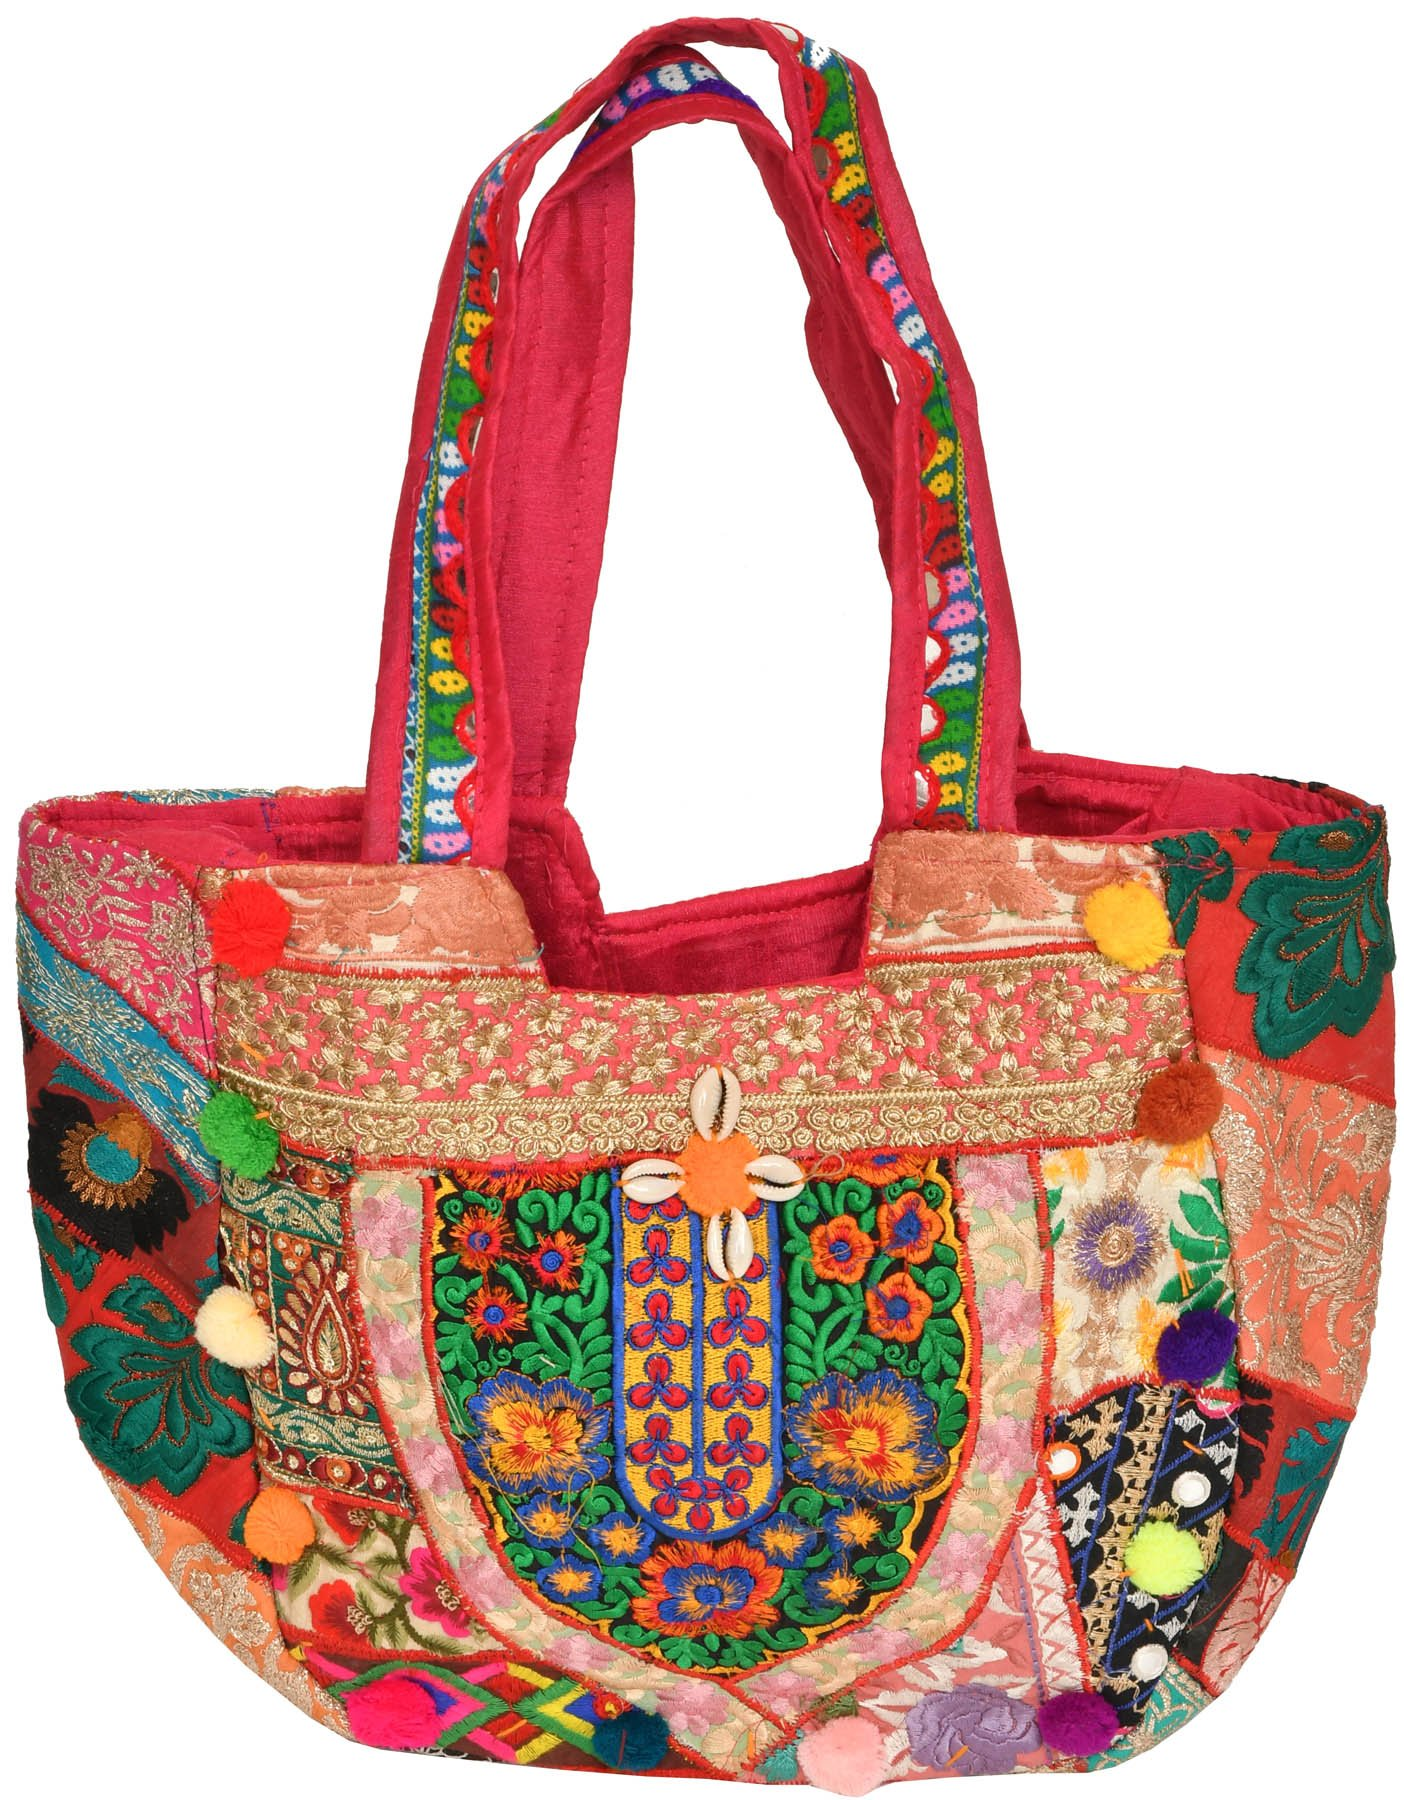 Multicolor shopper bag from kutch with embroidery and cowries